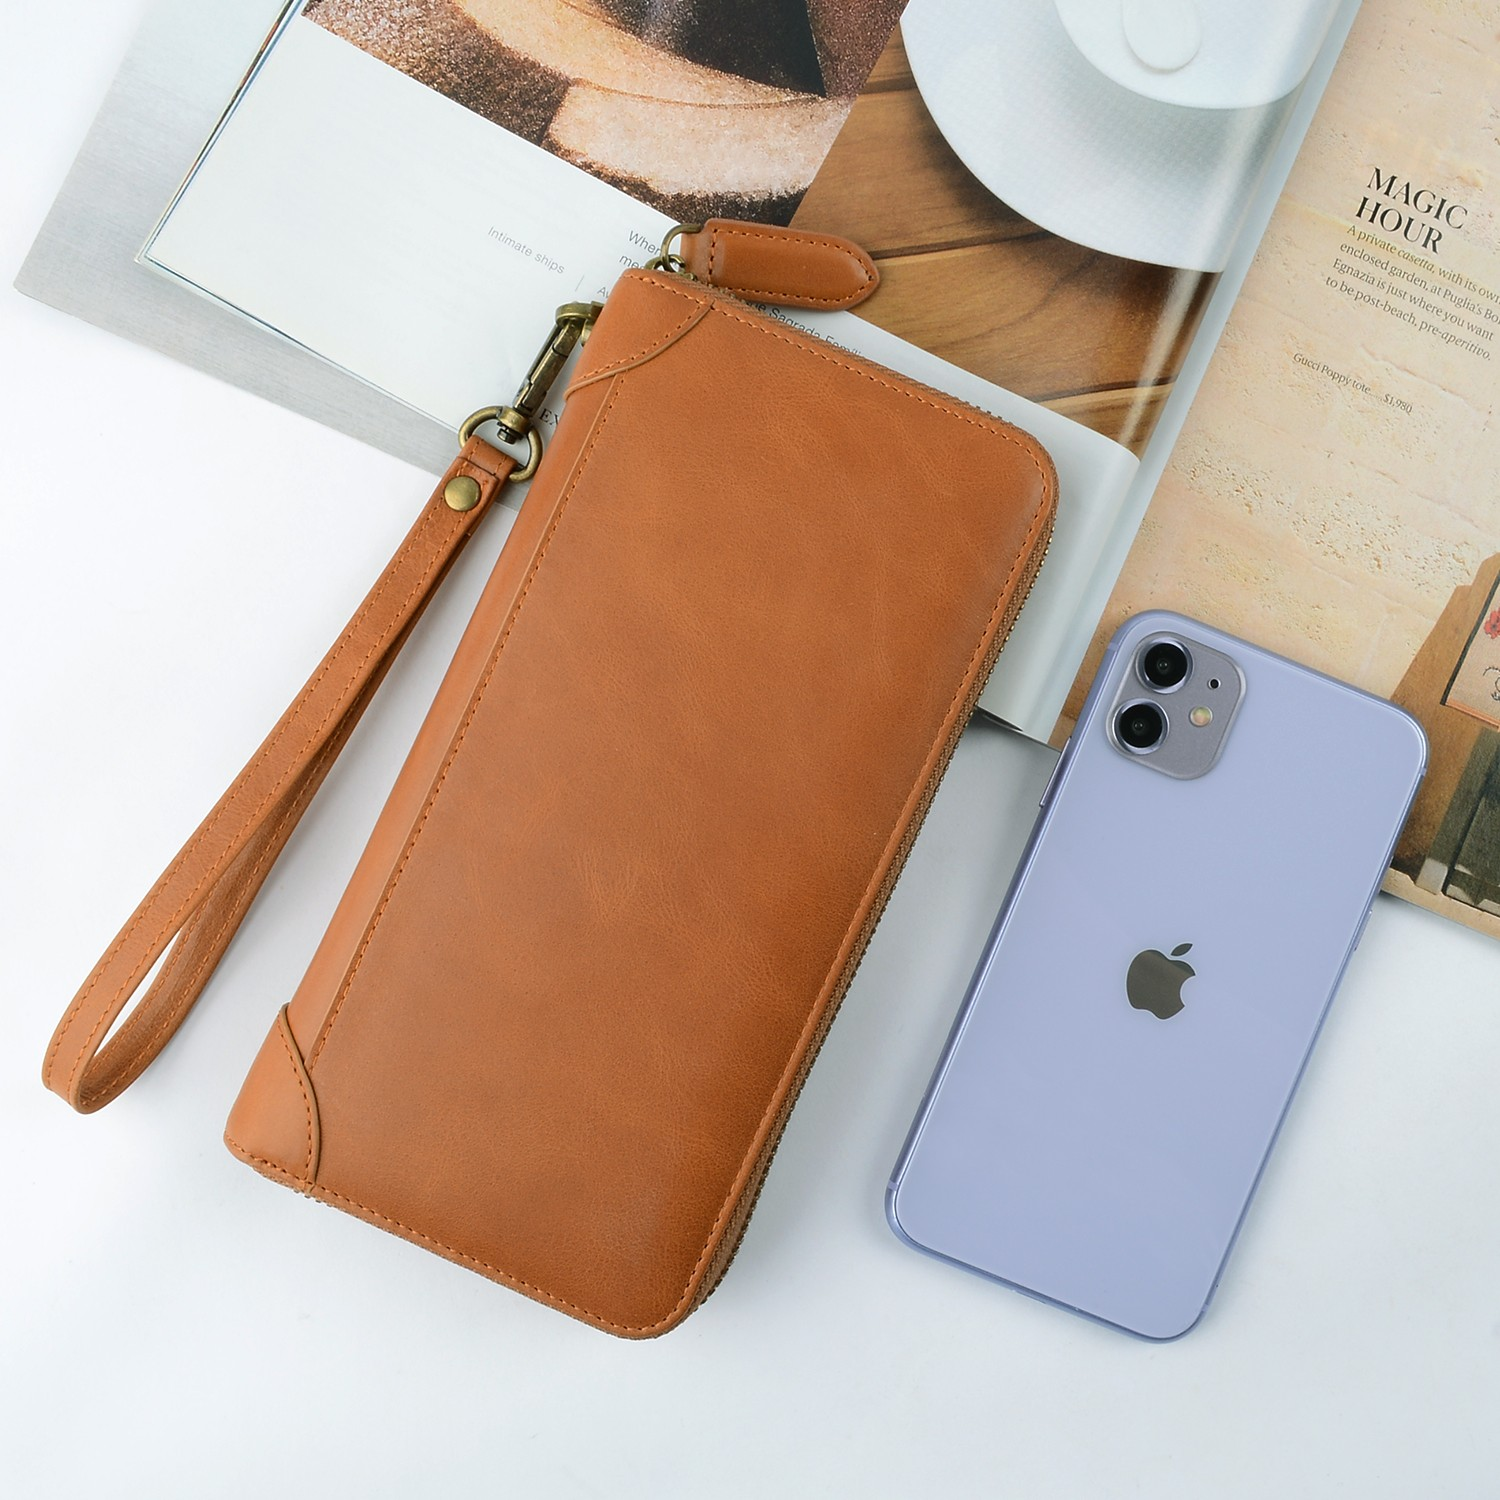 AIVI soft leather card holder wallet mens supply for phone XS Max-4